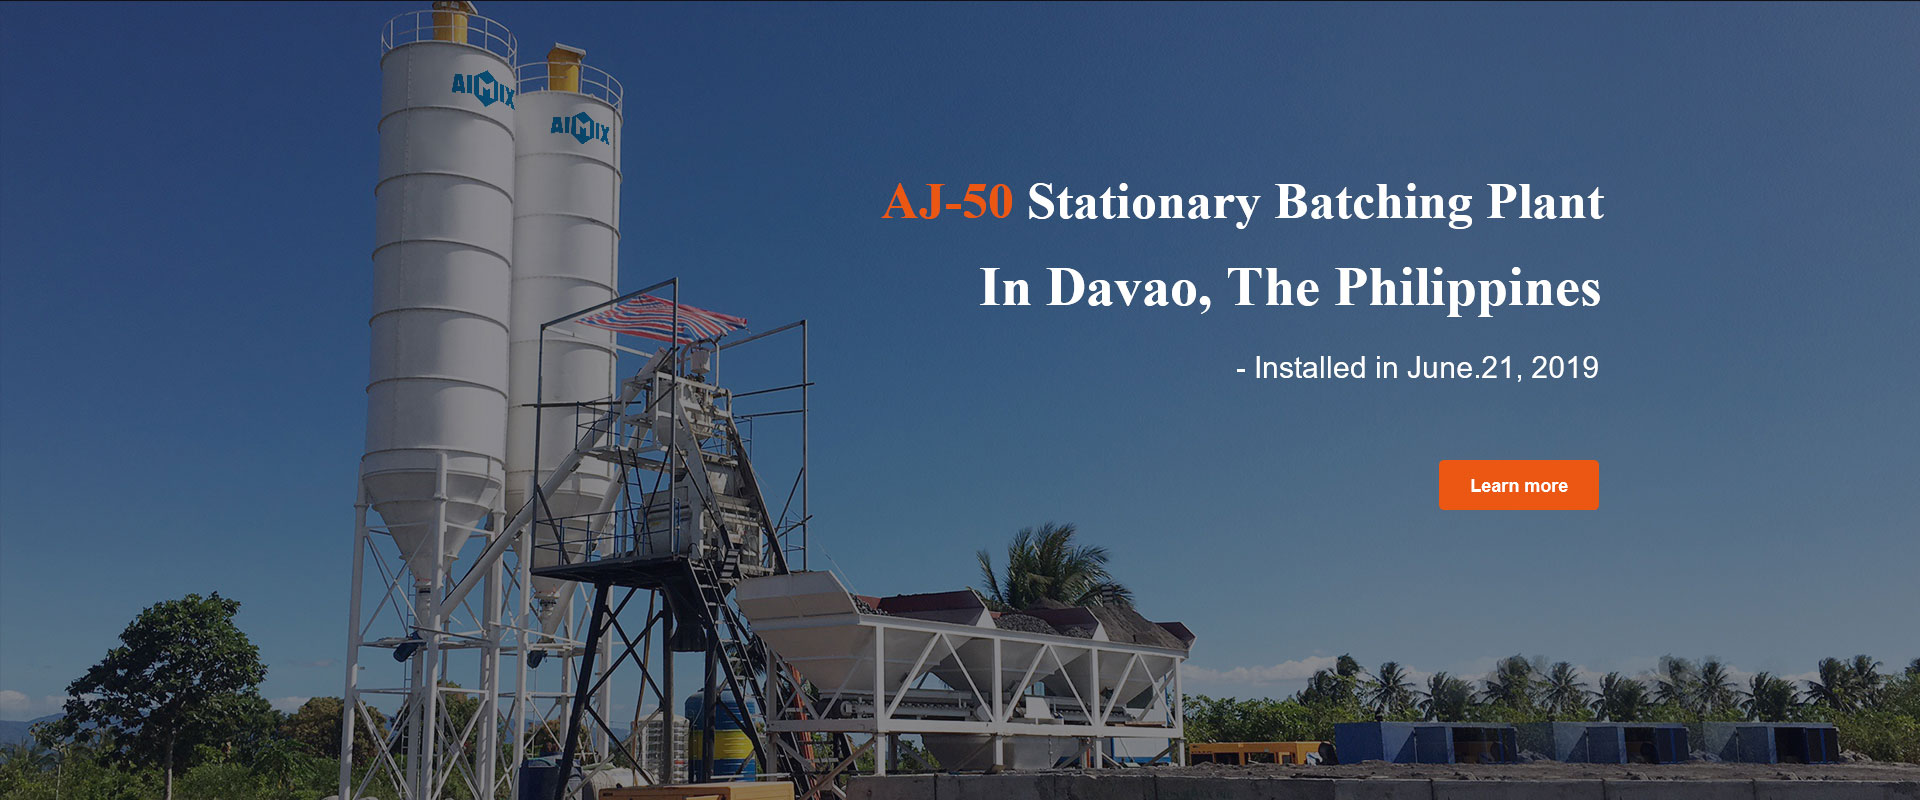 AJ-50 Stationary Batching Plant in Davao, Philippines